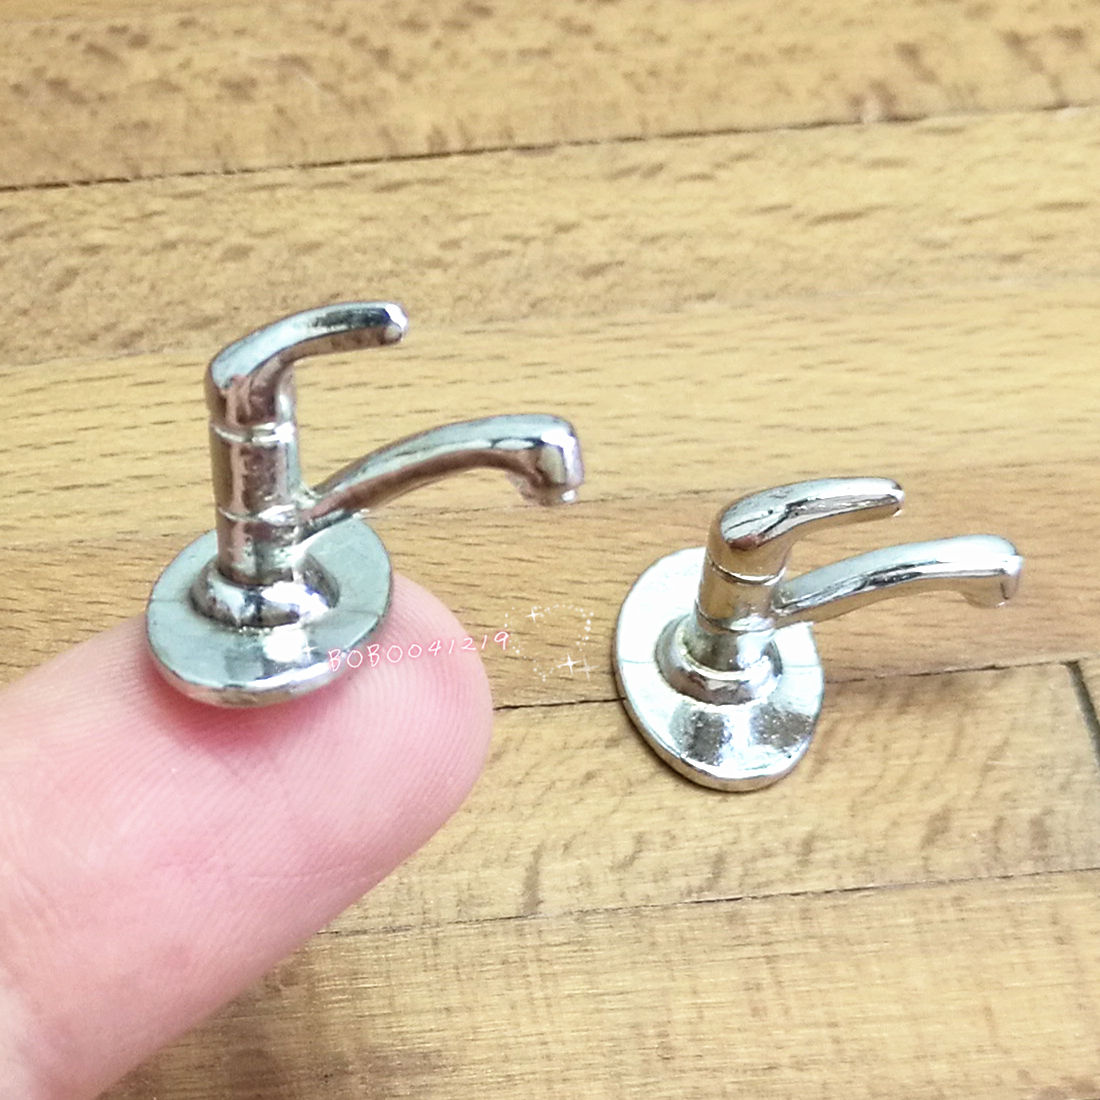 Dollhouse Miniature 1:12 Toy 2 Pieces Metal Silver Faucet Length 1.5cm SPO418